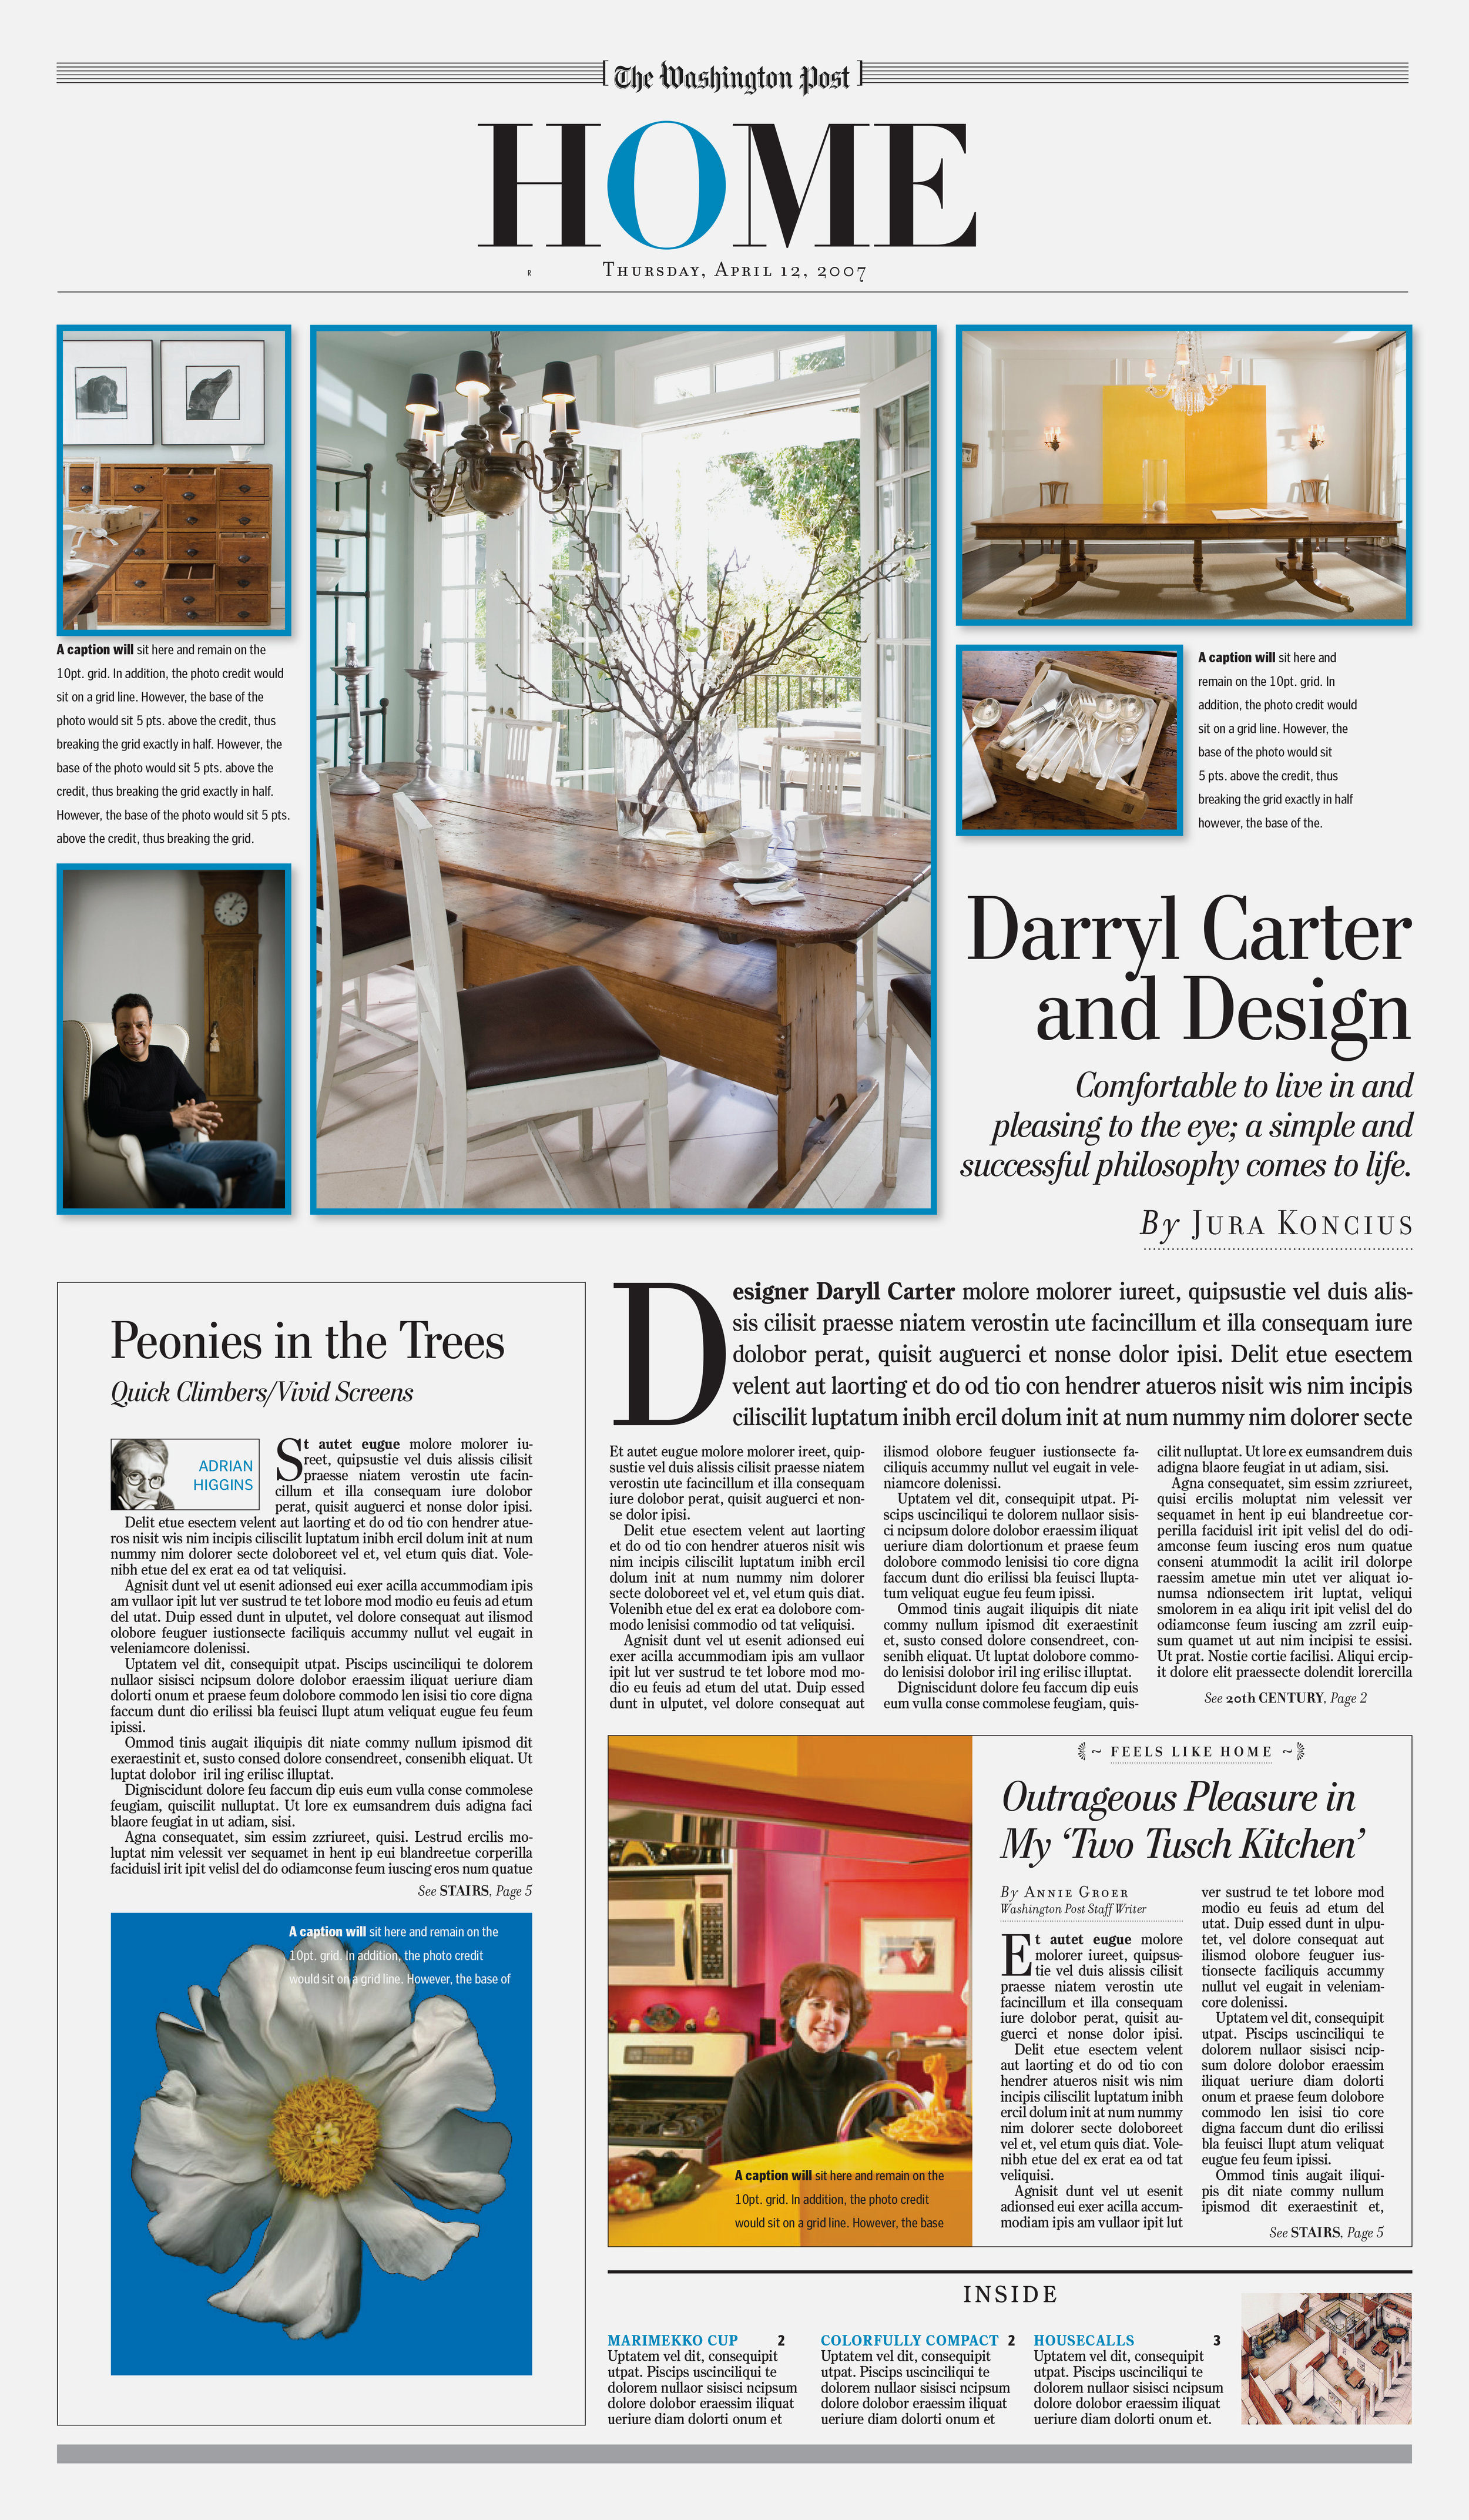 The Washington Post Home Section Redesign